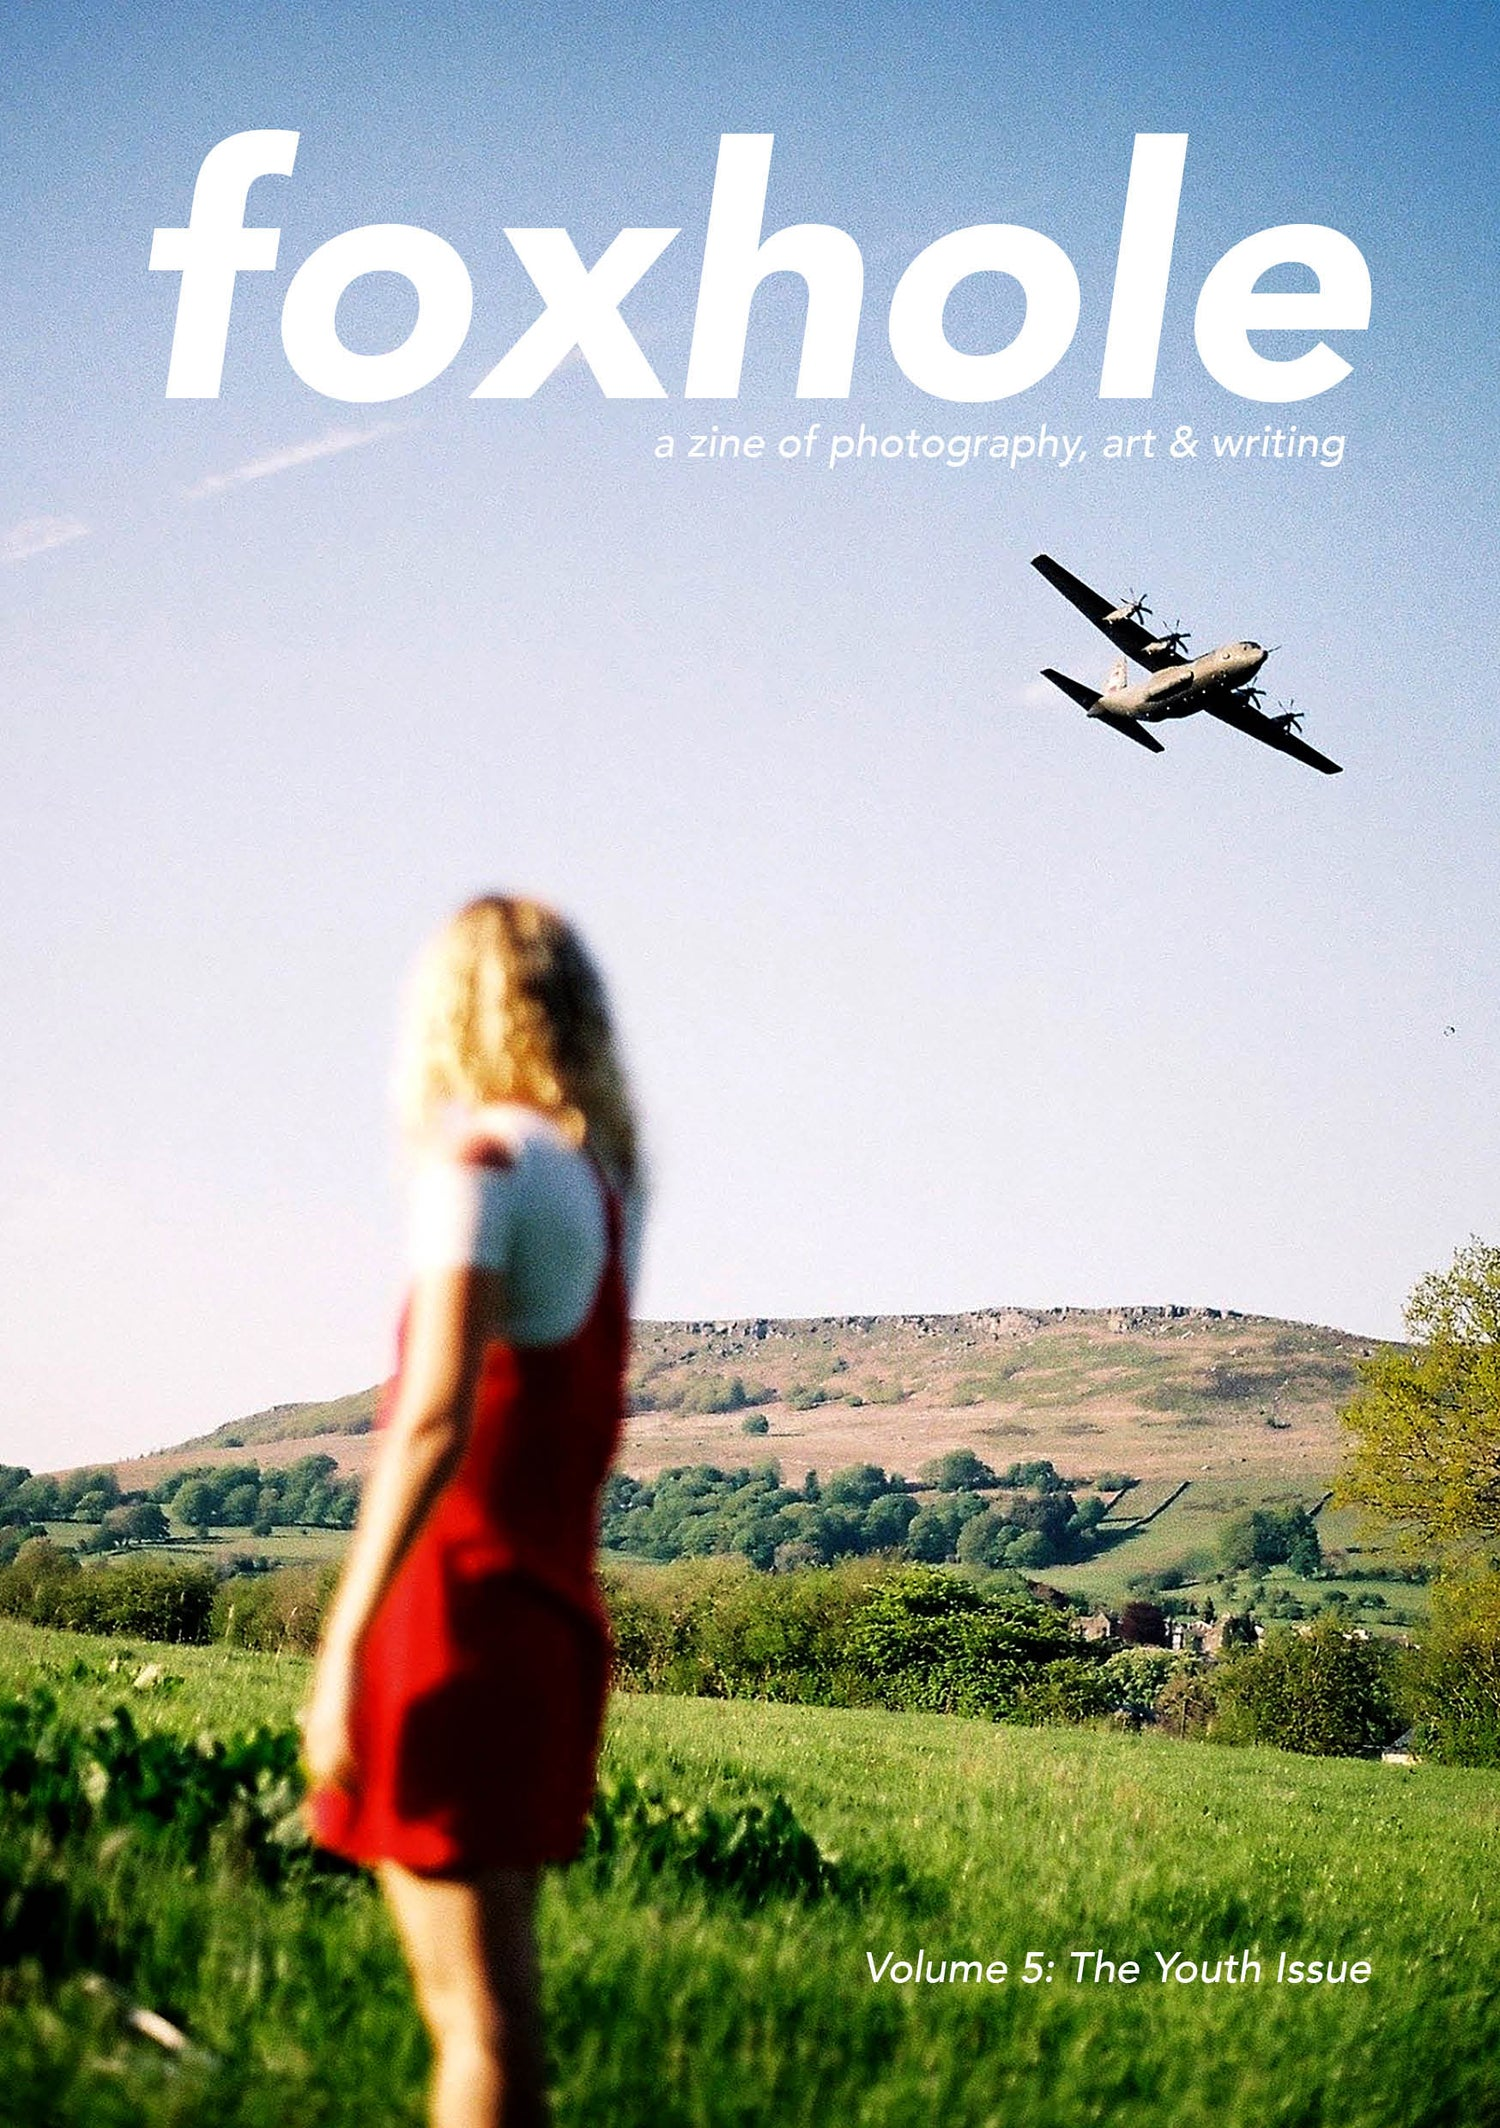 Foxhole Zine Volume 5 - The Youth Issue